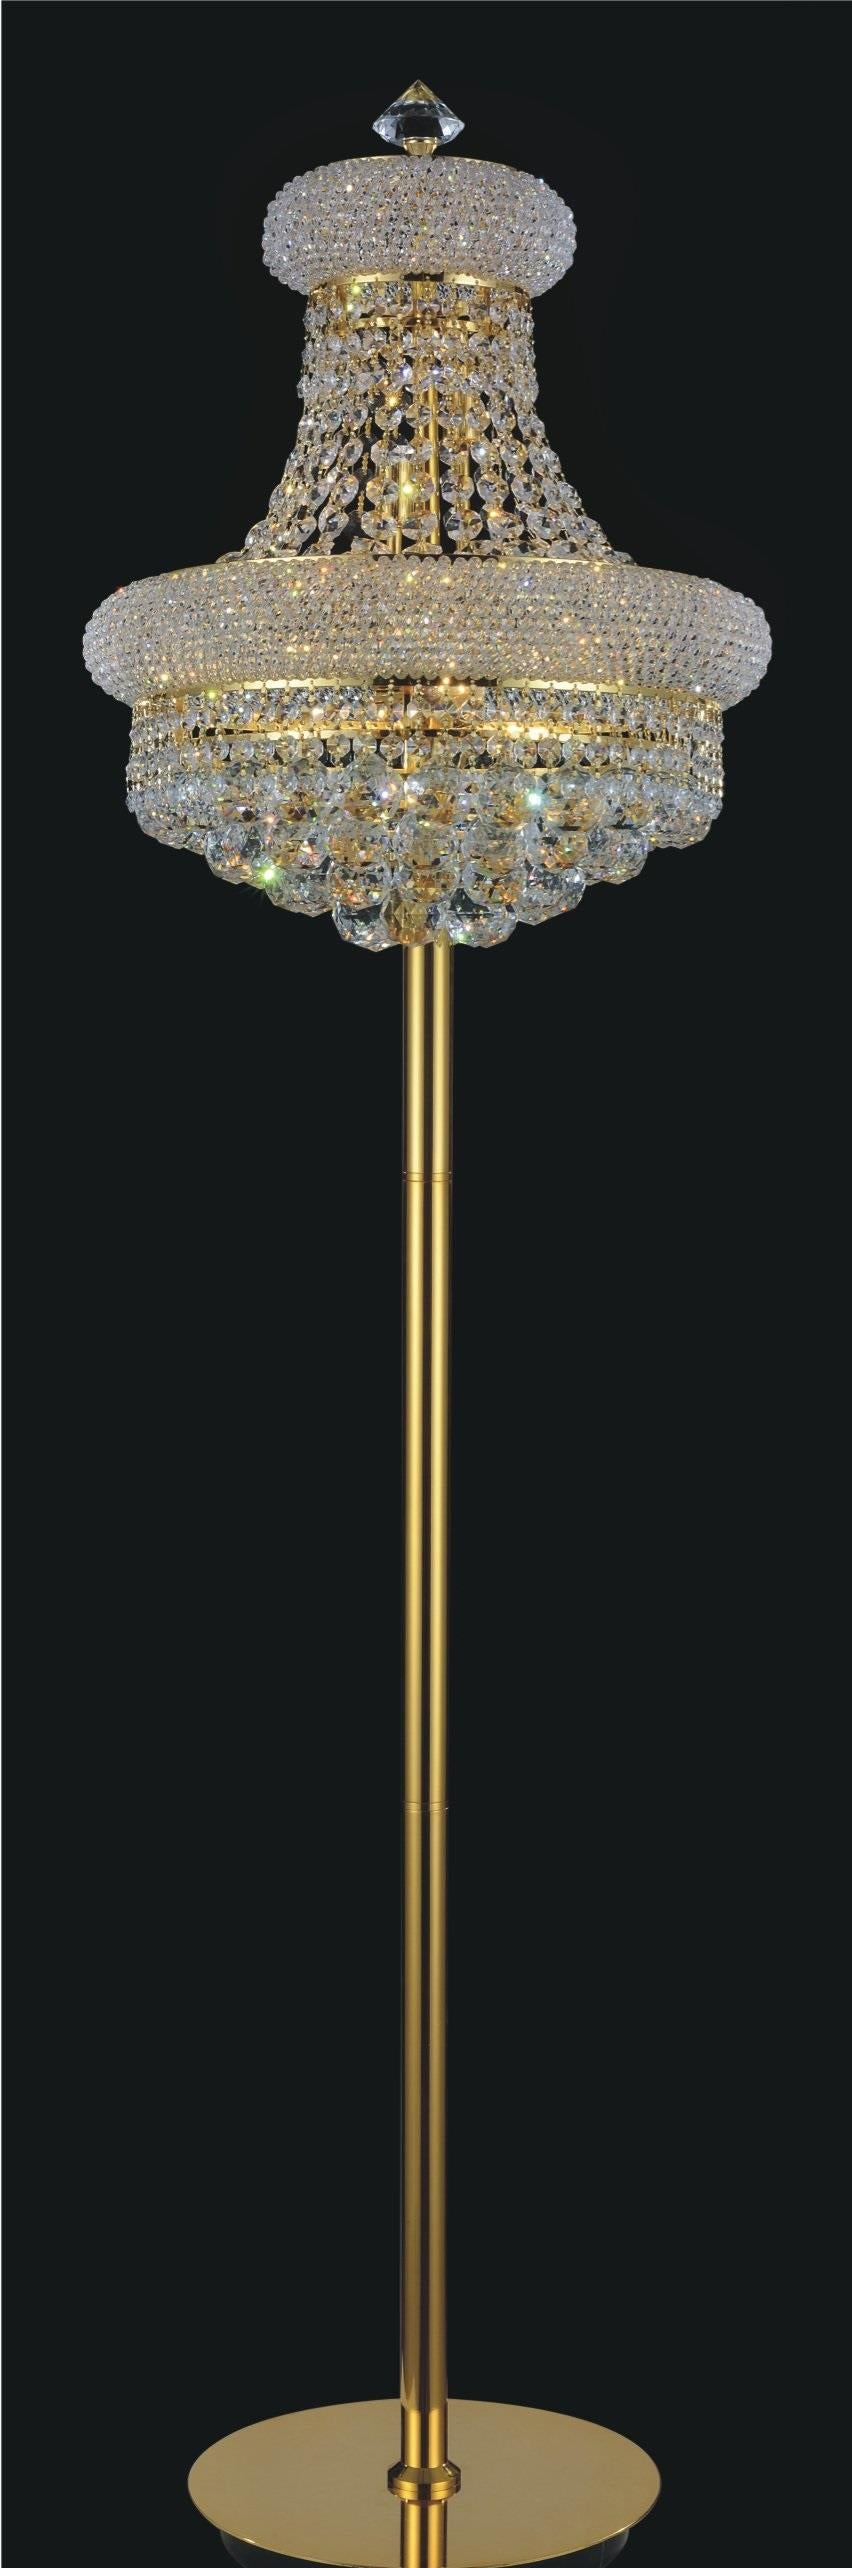 8 Light Floor Lamp with Gold finish